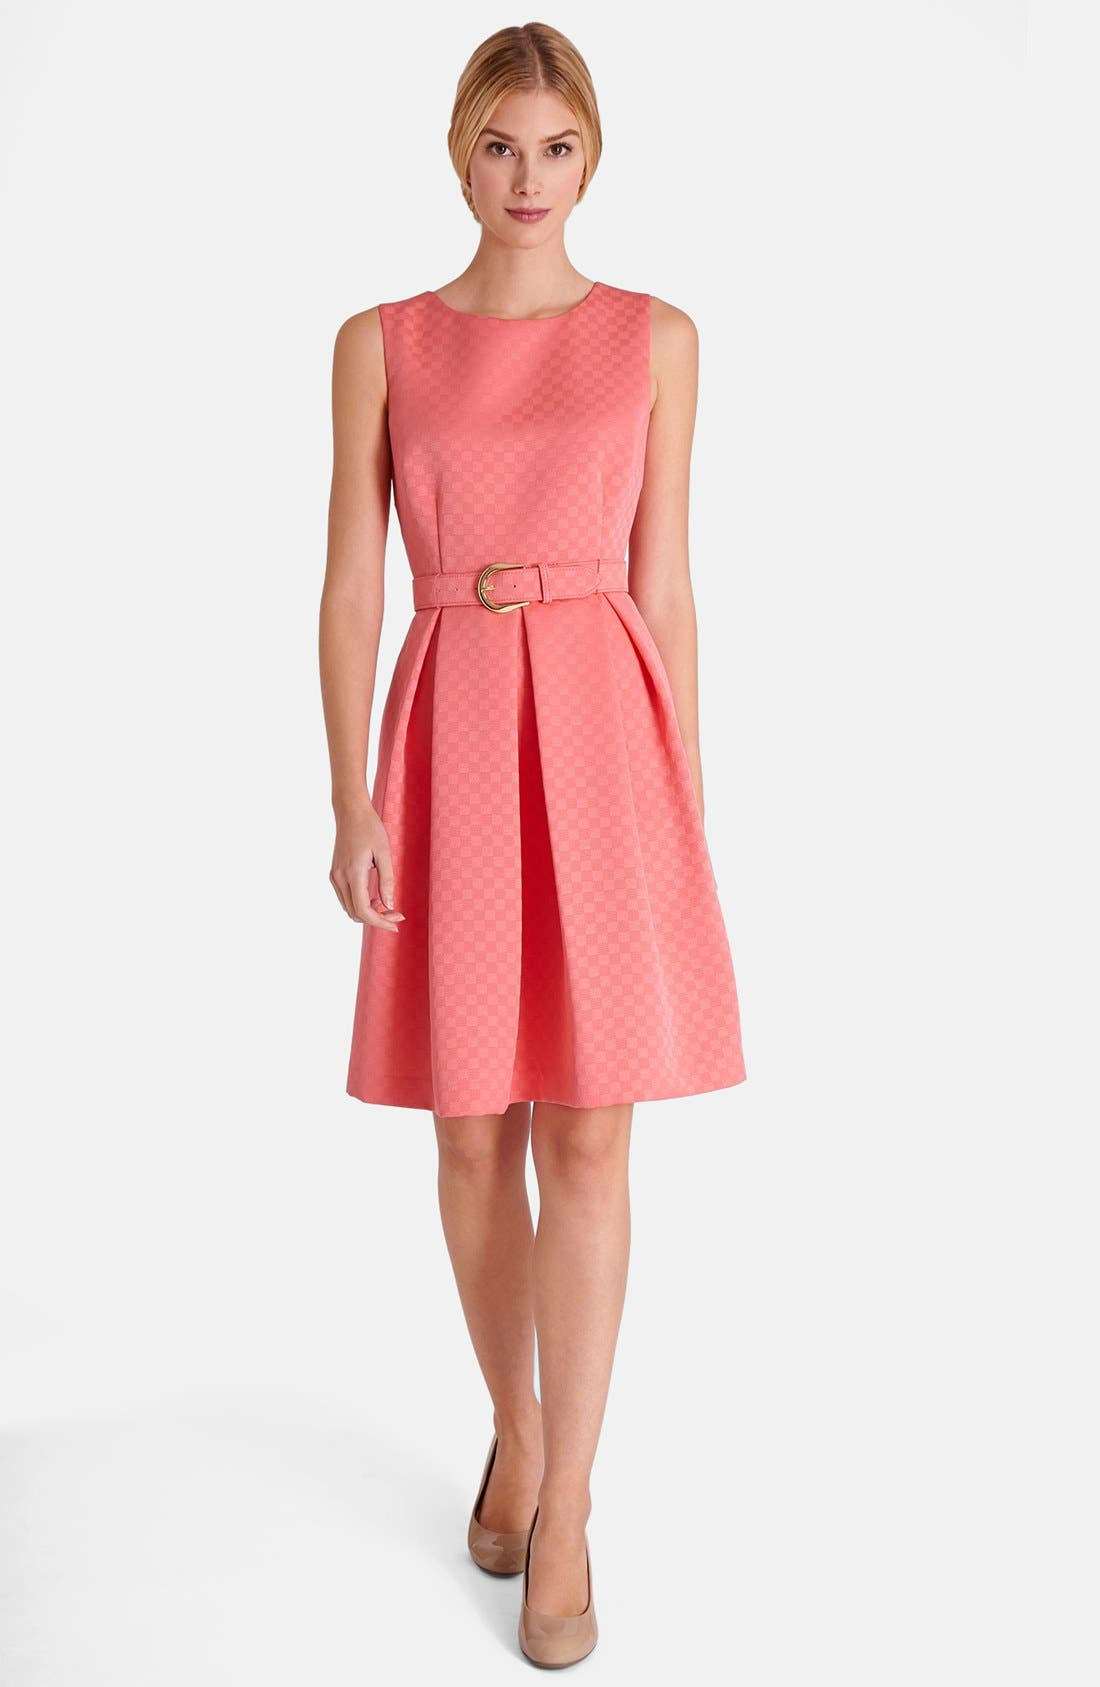 Alternate Image 1 Selected - Tahari Jacquard Fit & Flare Dress (Petite)